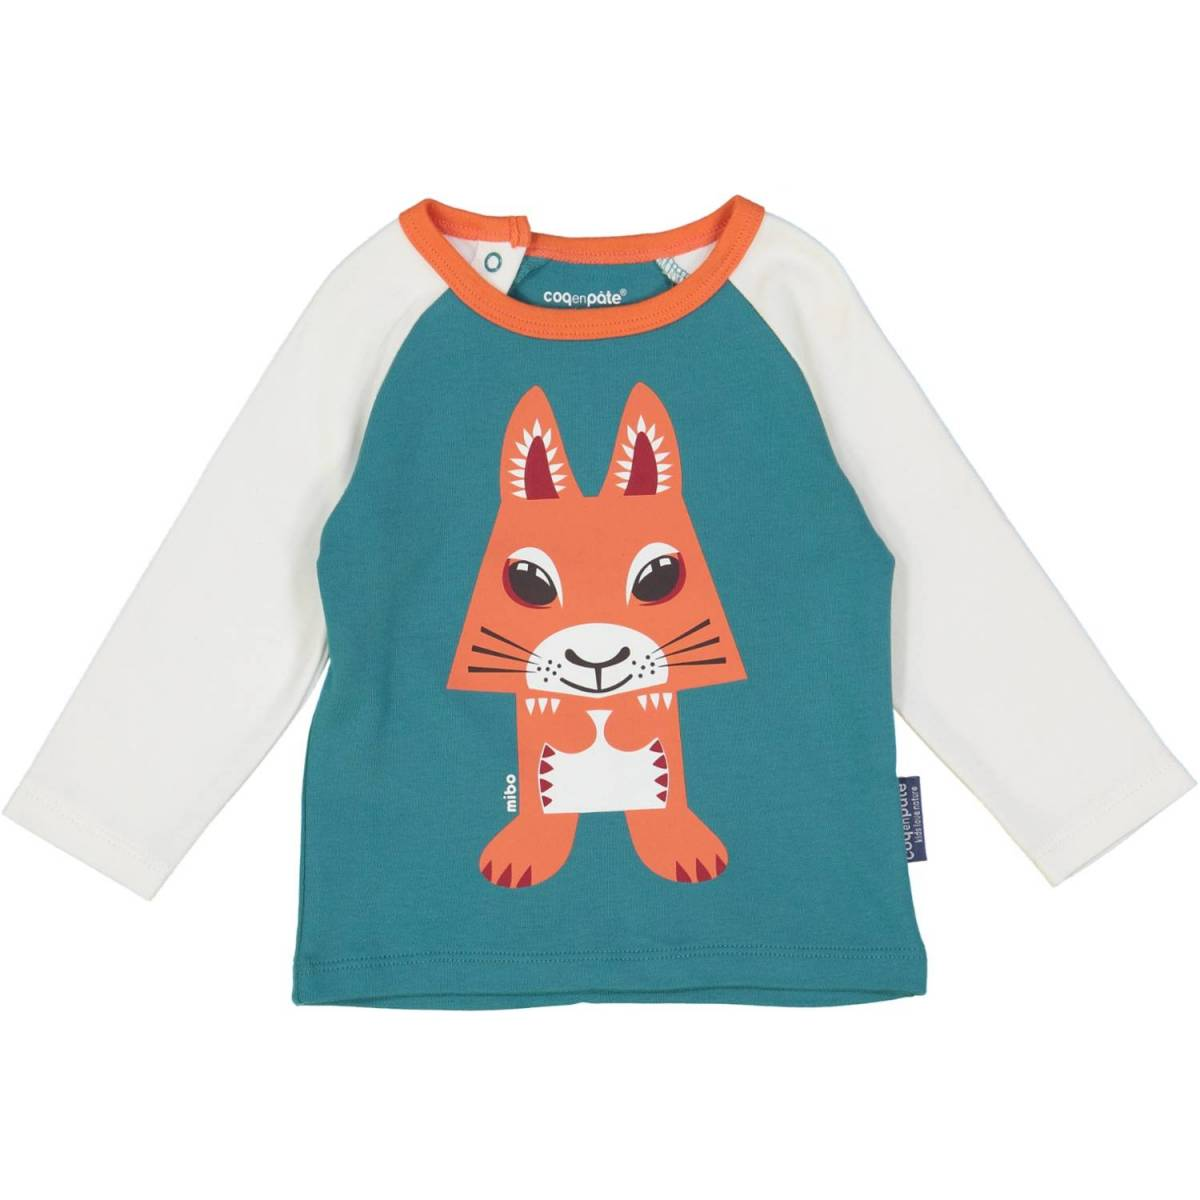 Squirrel raglan t-shirt